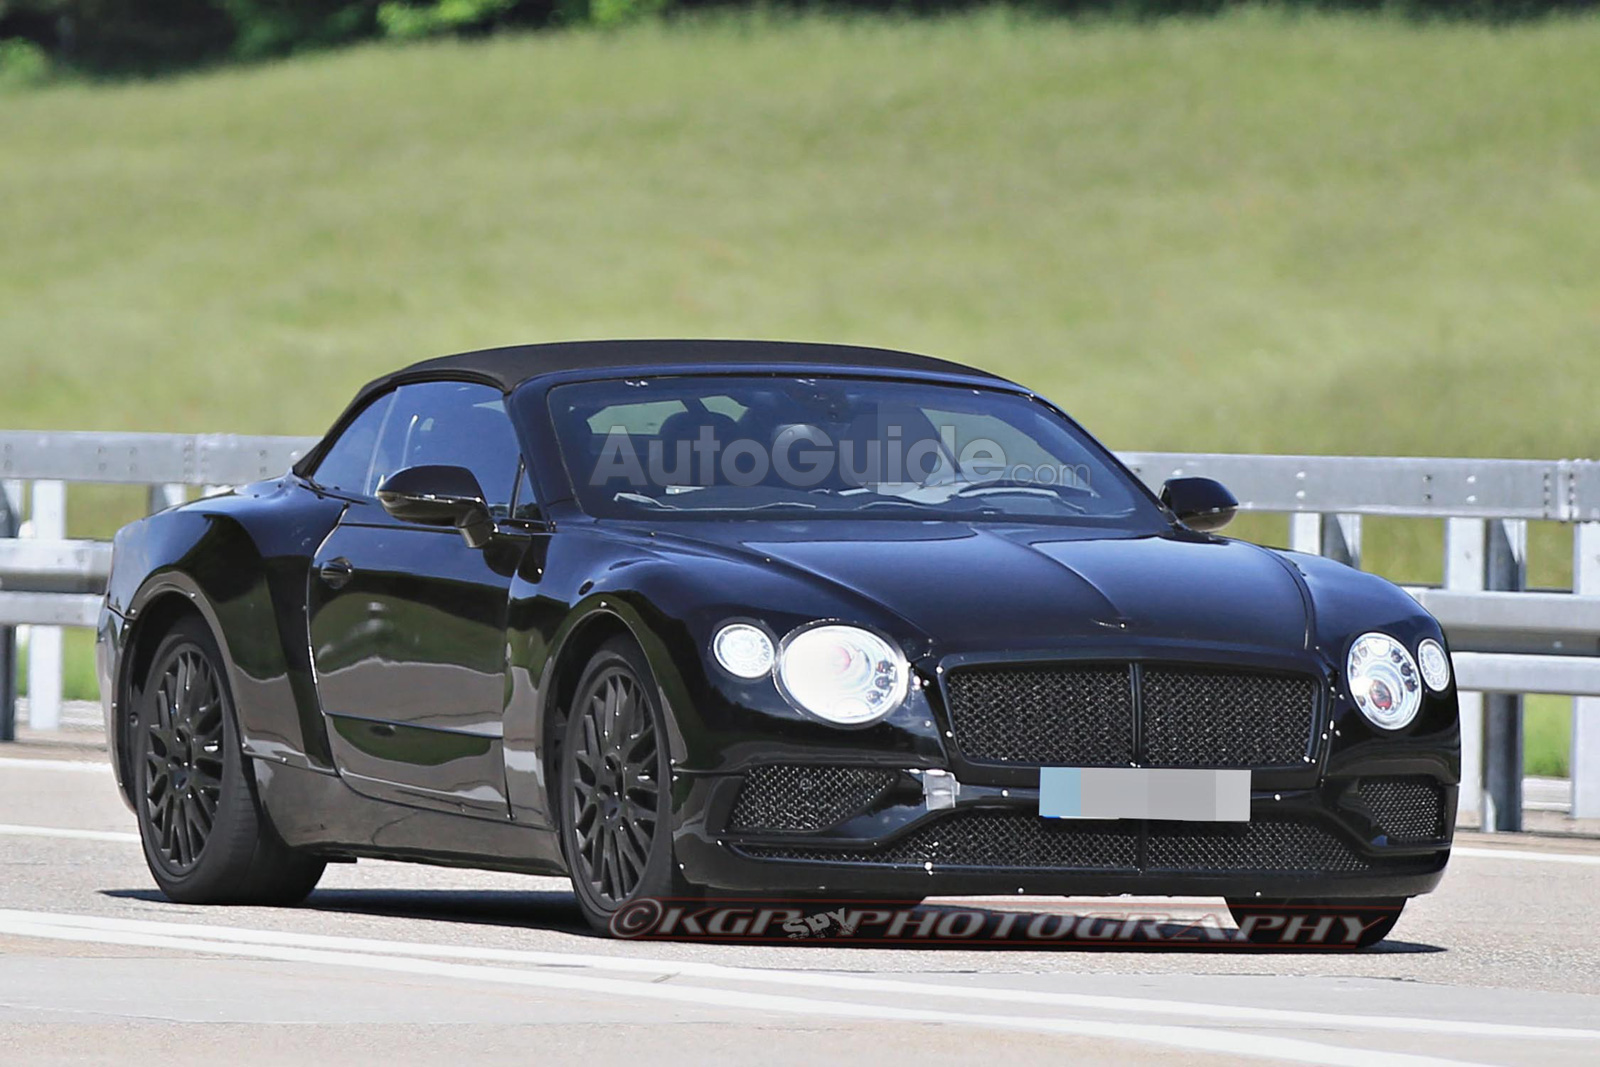 2019 Bentley Continental GTC Spied Testing with Sporty Styling » AutoGuide.com News